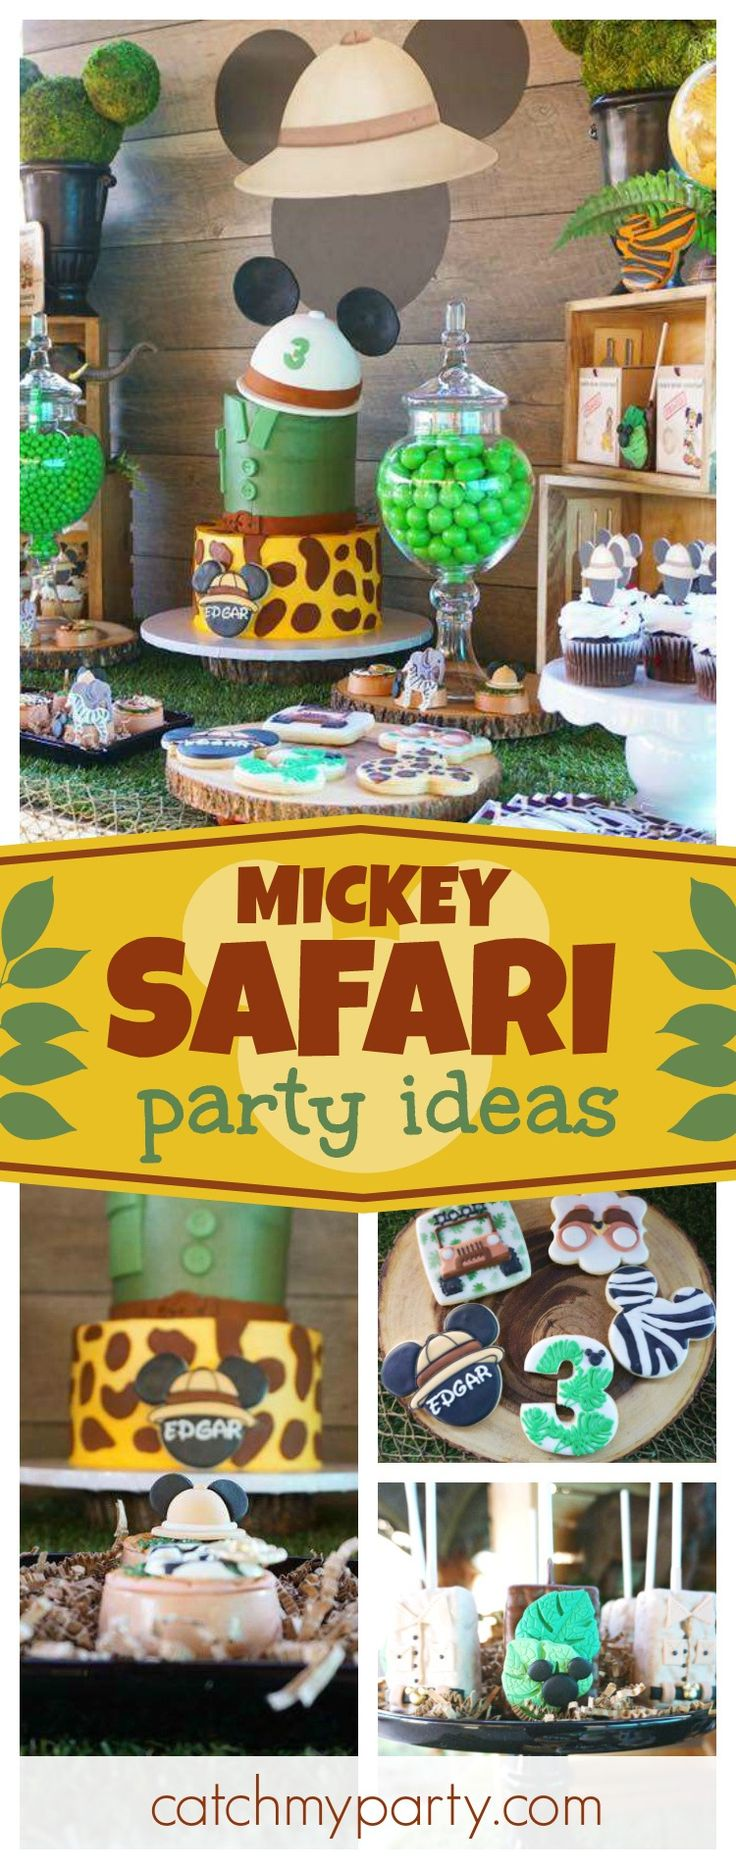 Make sure you see this awesome Mickey Safari birthday party! The birthday is so cool!! See more party ideas and share yours at CatchMyParty.com